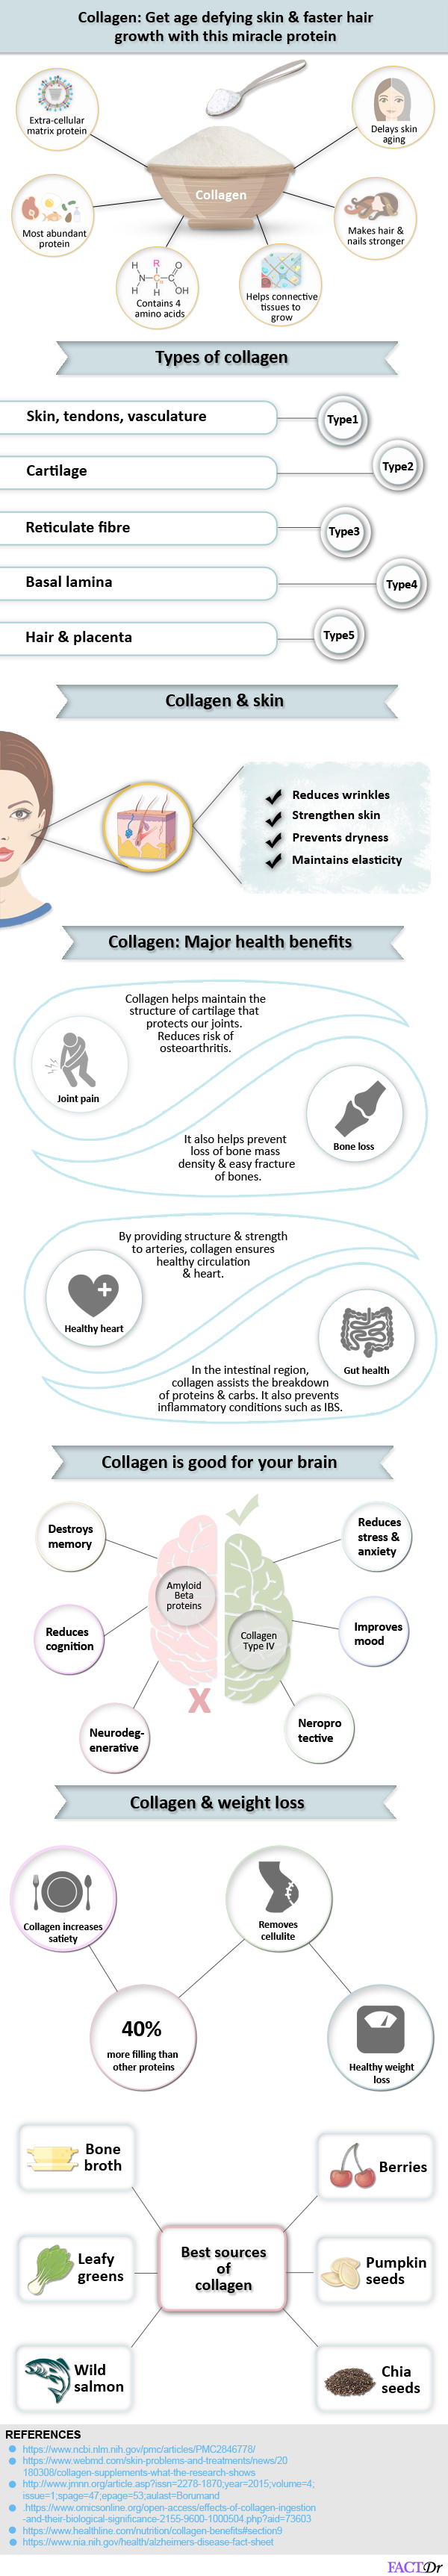 collagen-infographic (1).png